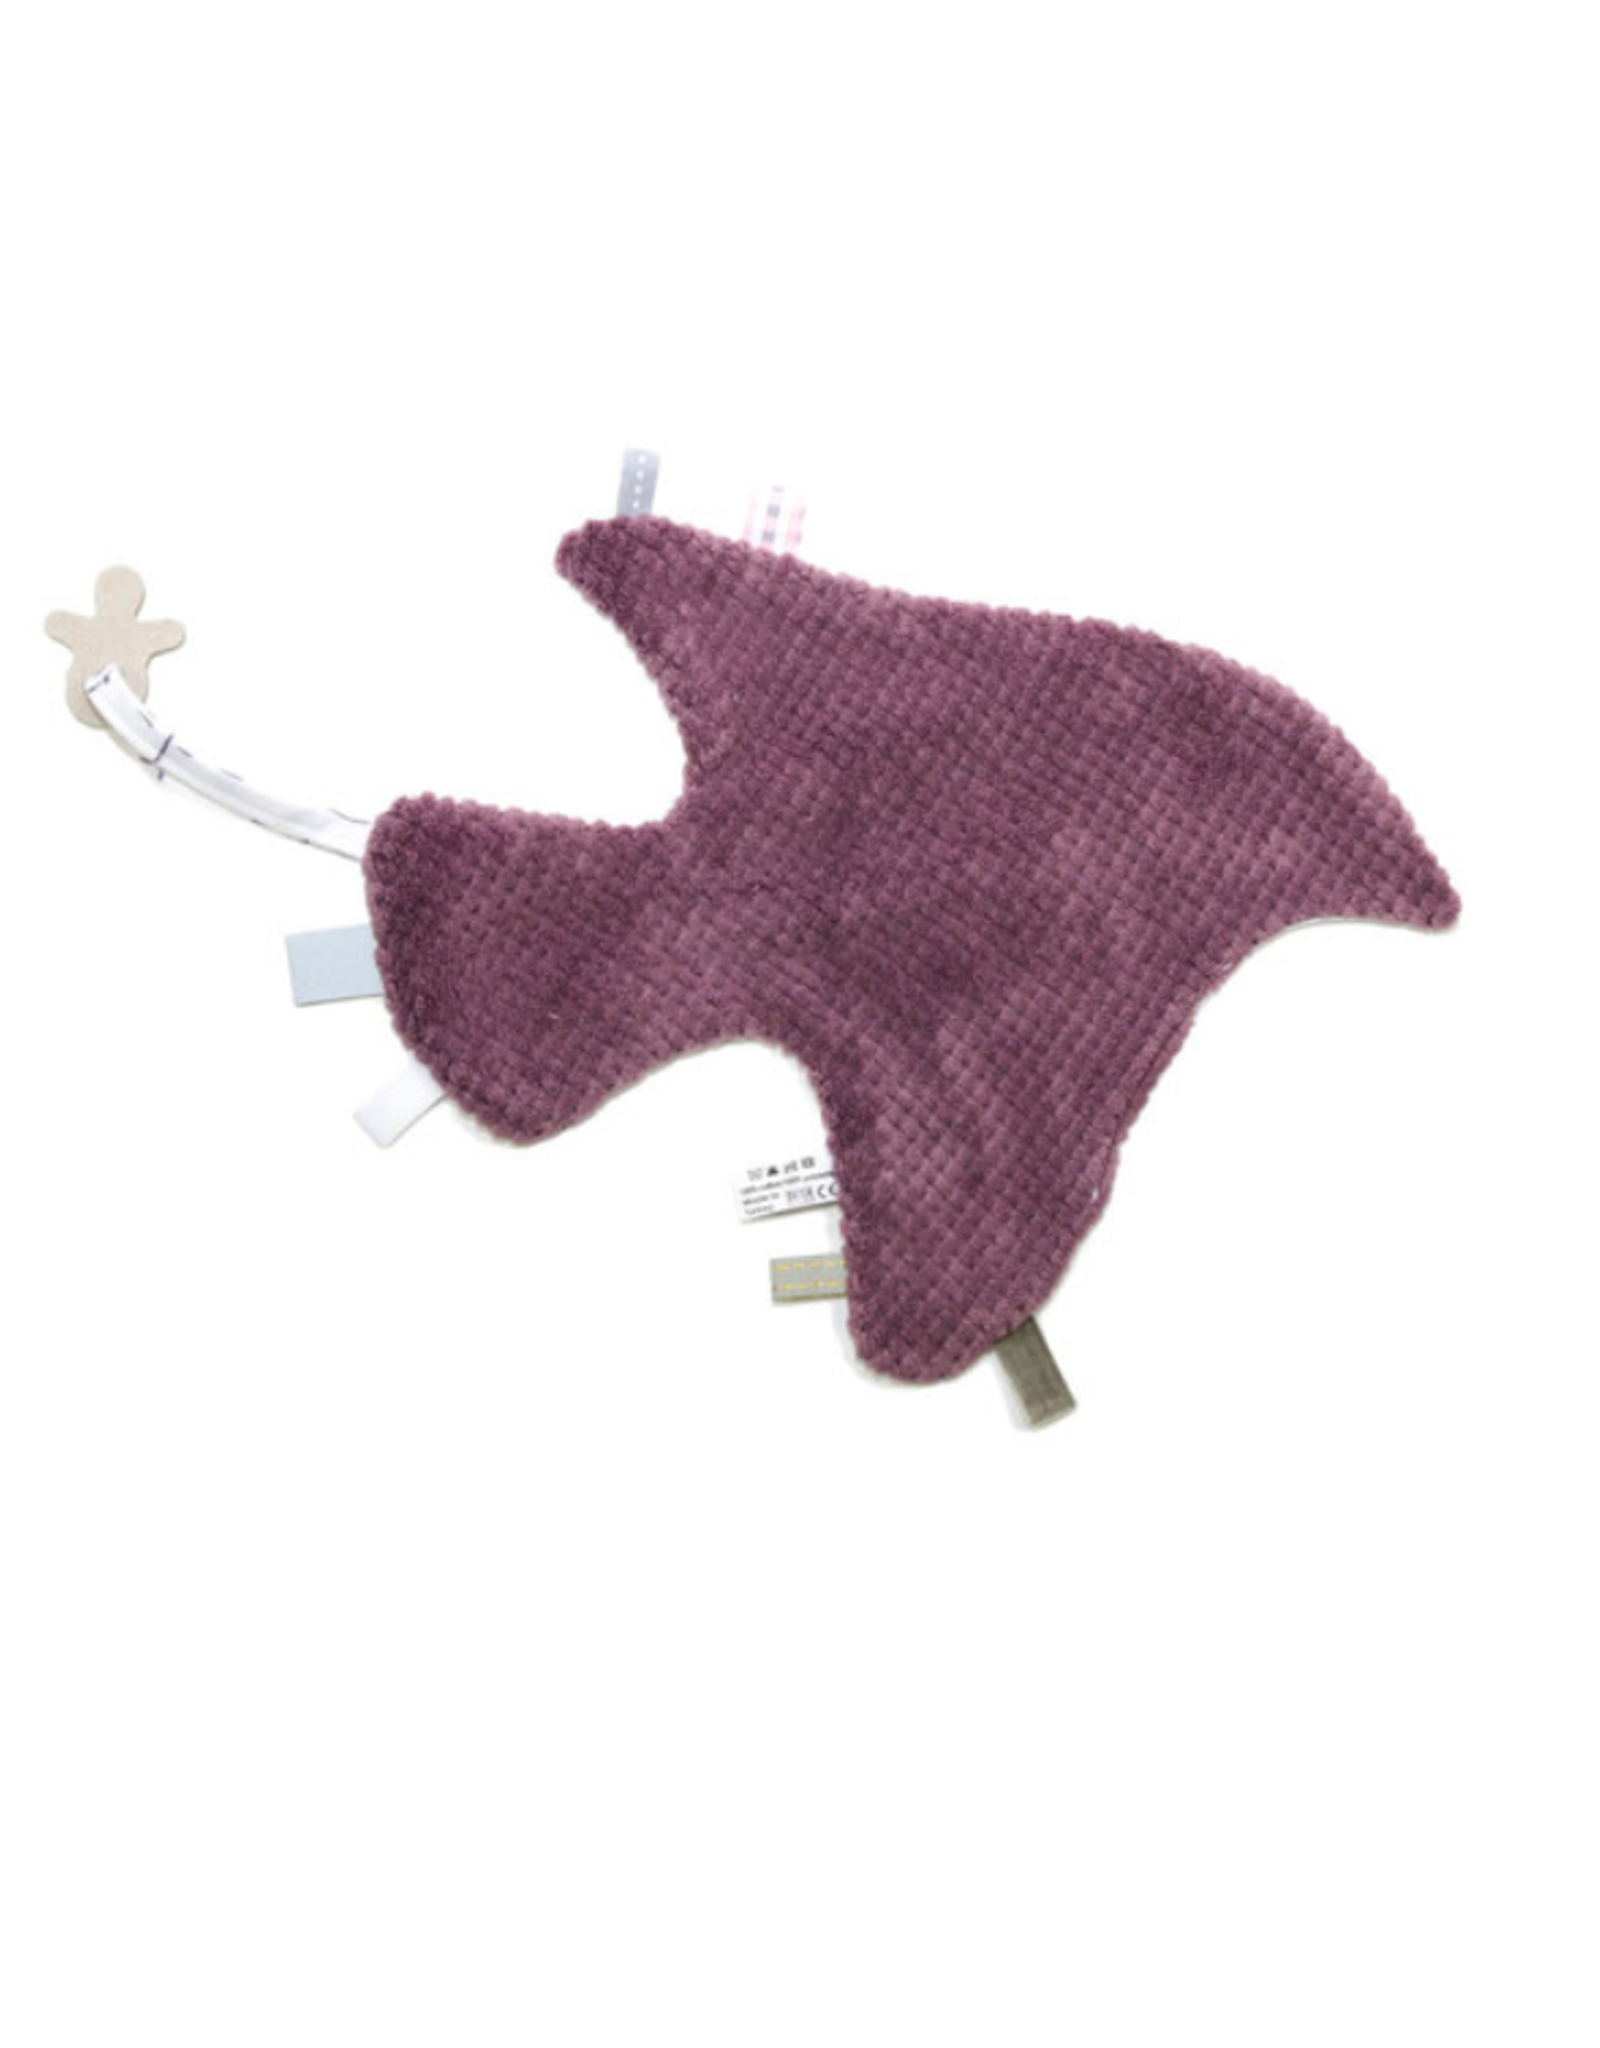 Snoozebaby Comfort toy sweet dreaming soft mauve